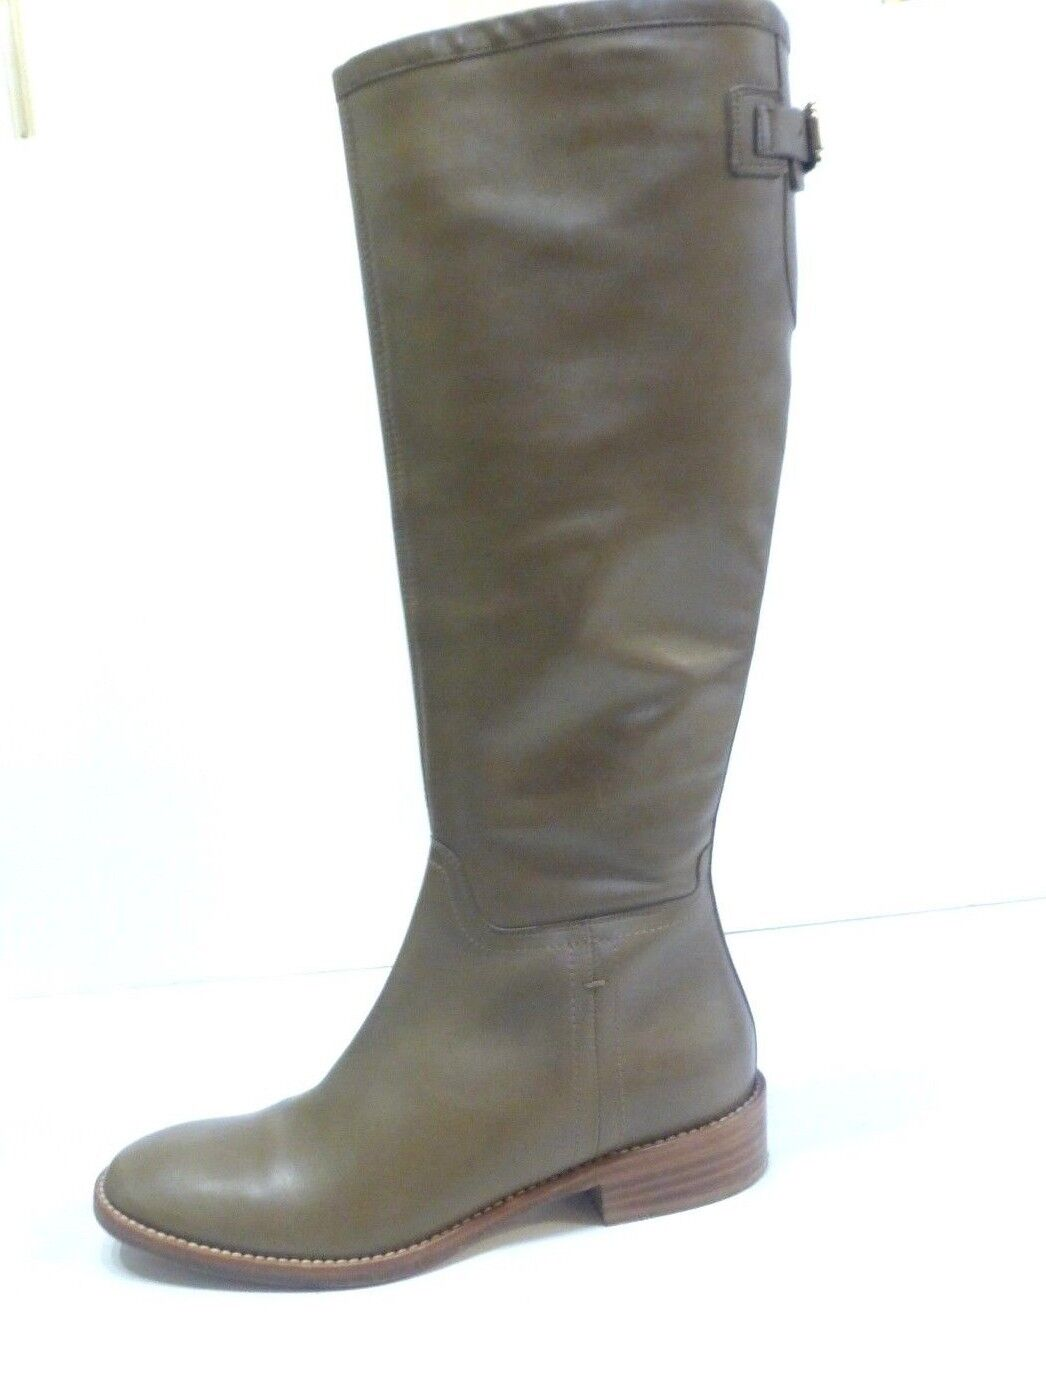 Max Mara Taupe Brown Leather Tall Boots sz 7 Euro 37